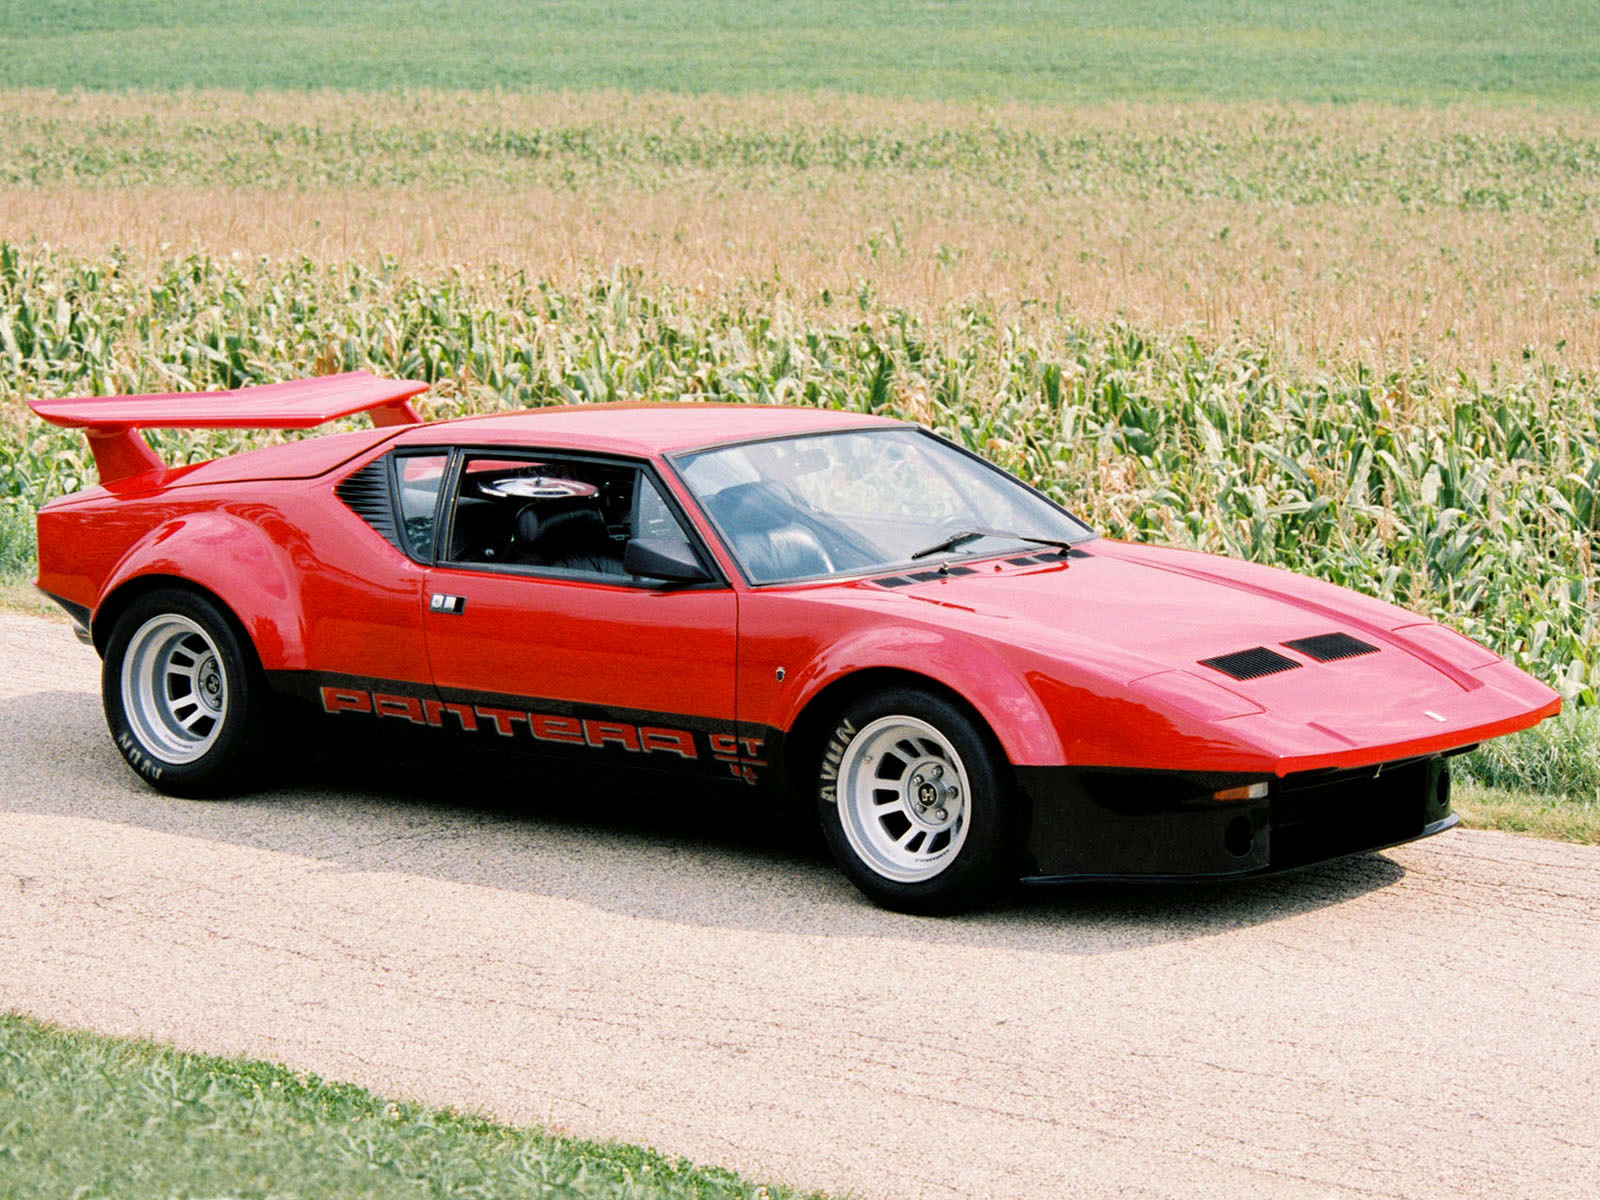 Pictures Of De Tomaso Pantera